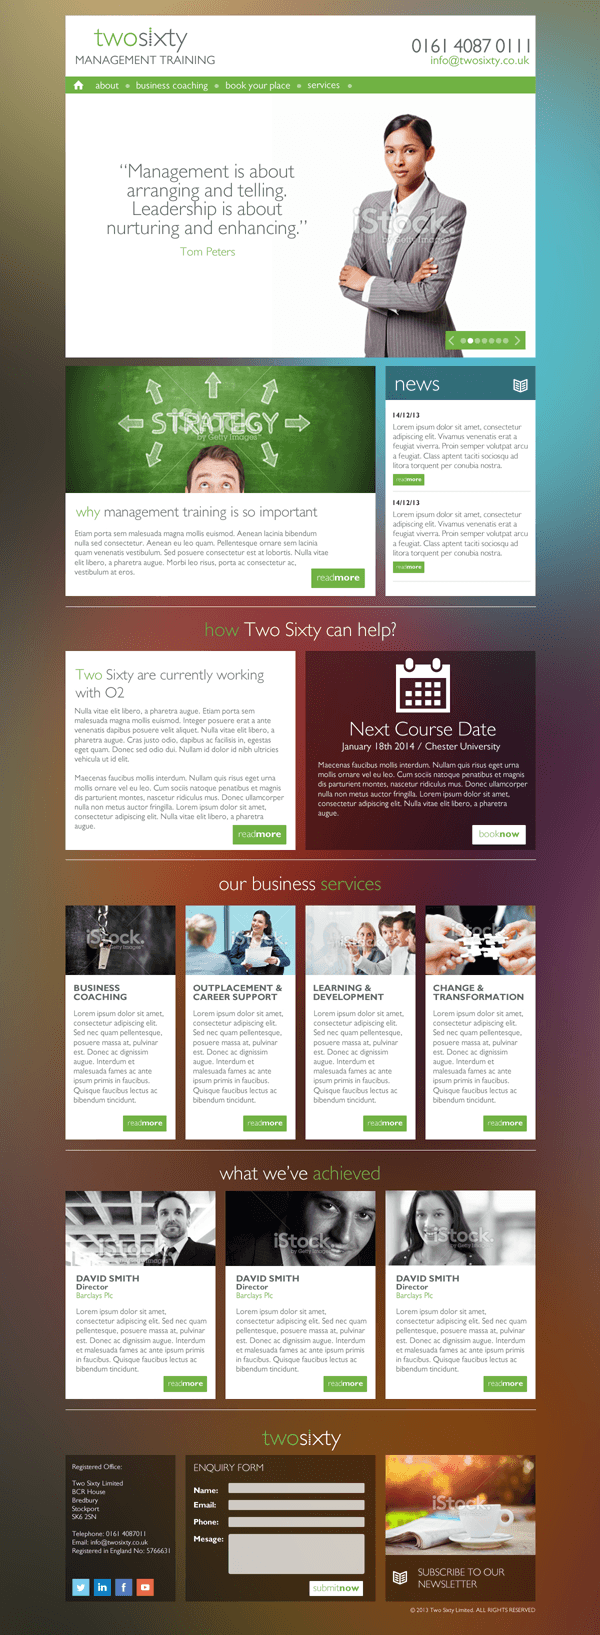 blog-two-sixty-website-redesign-03